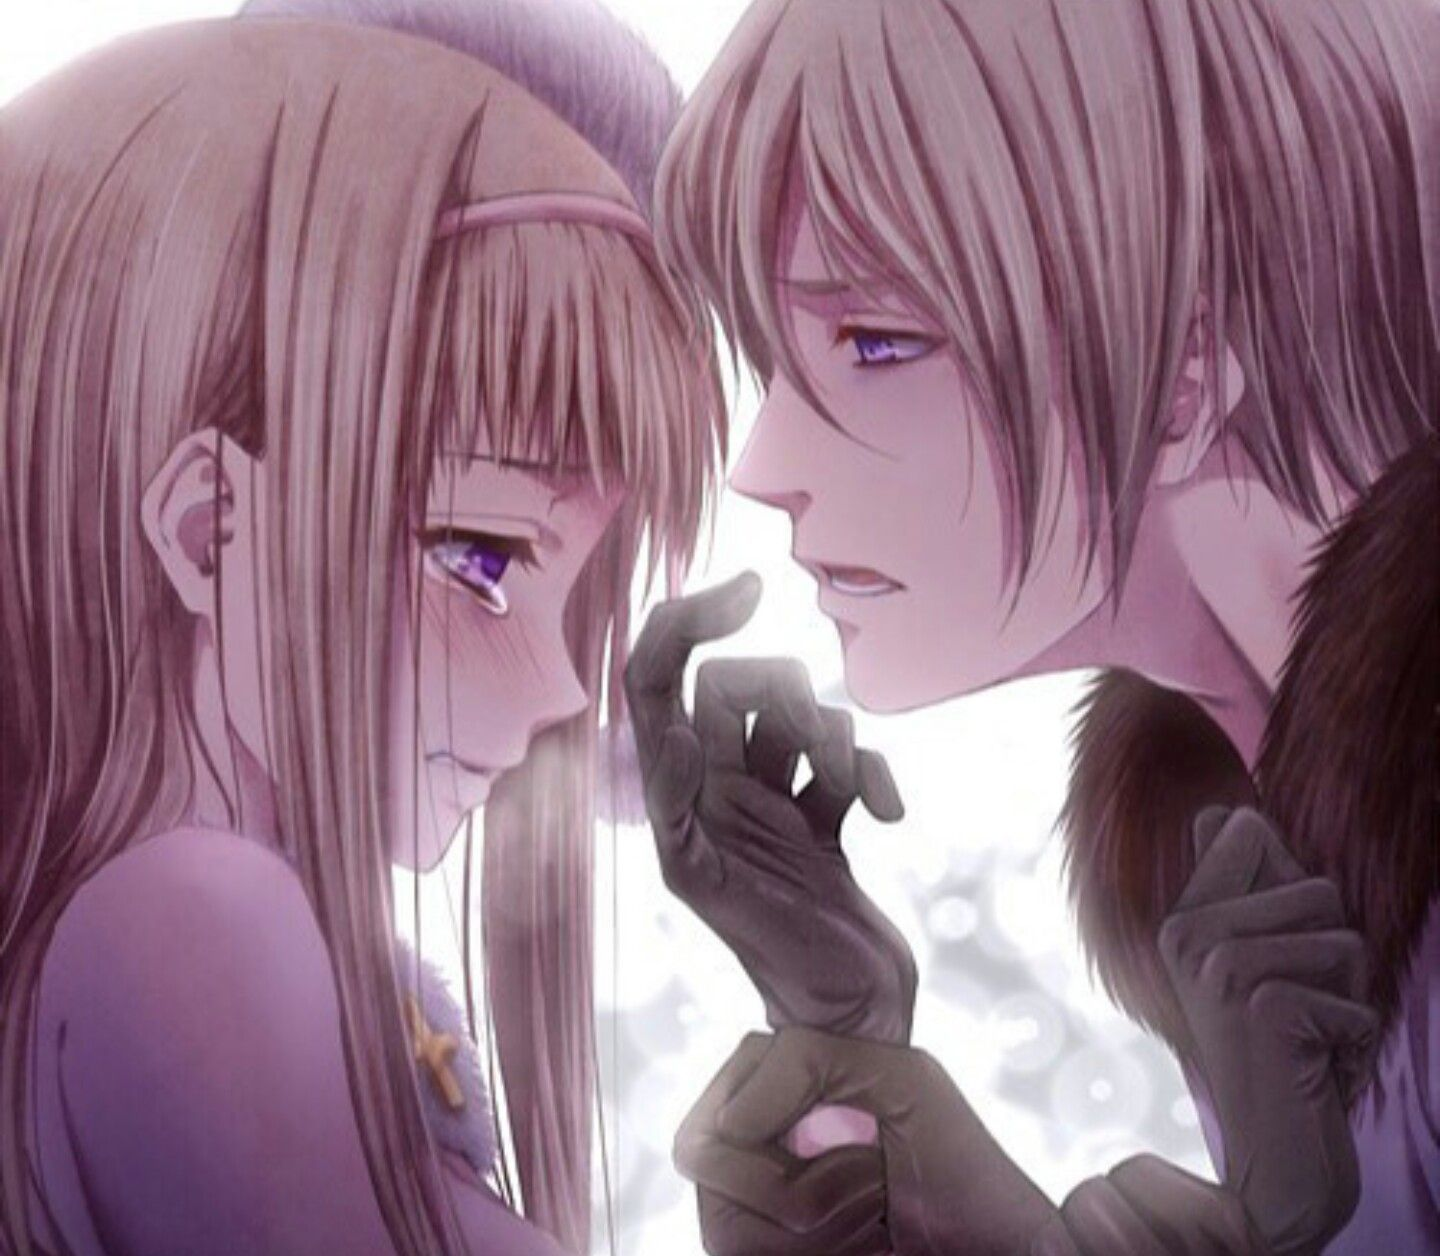 Anime couple image by dora lee Nightcore, Anime